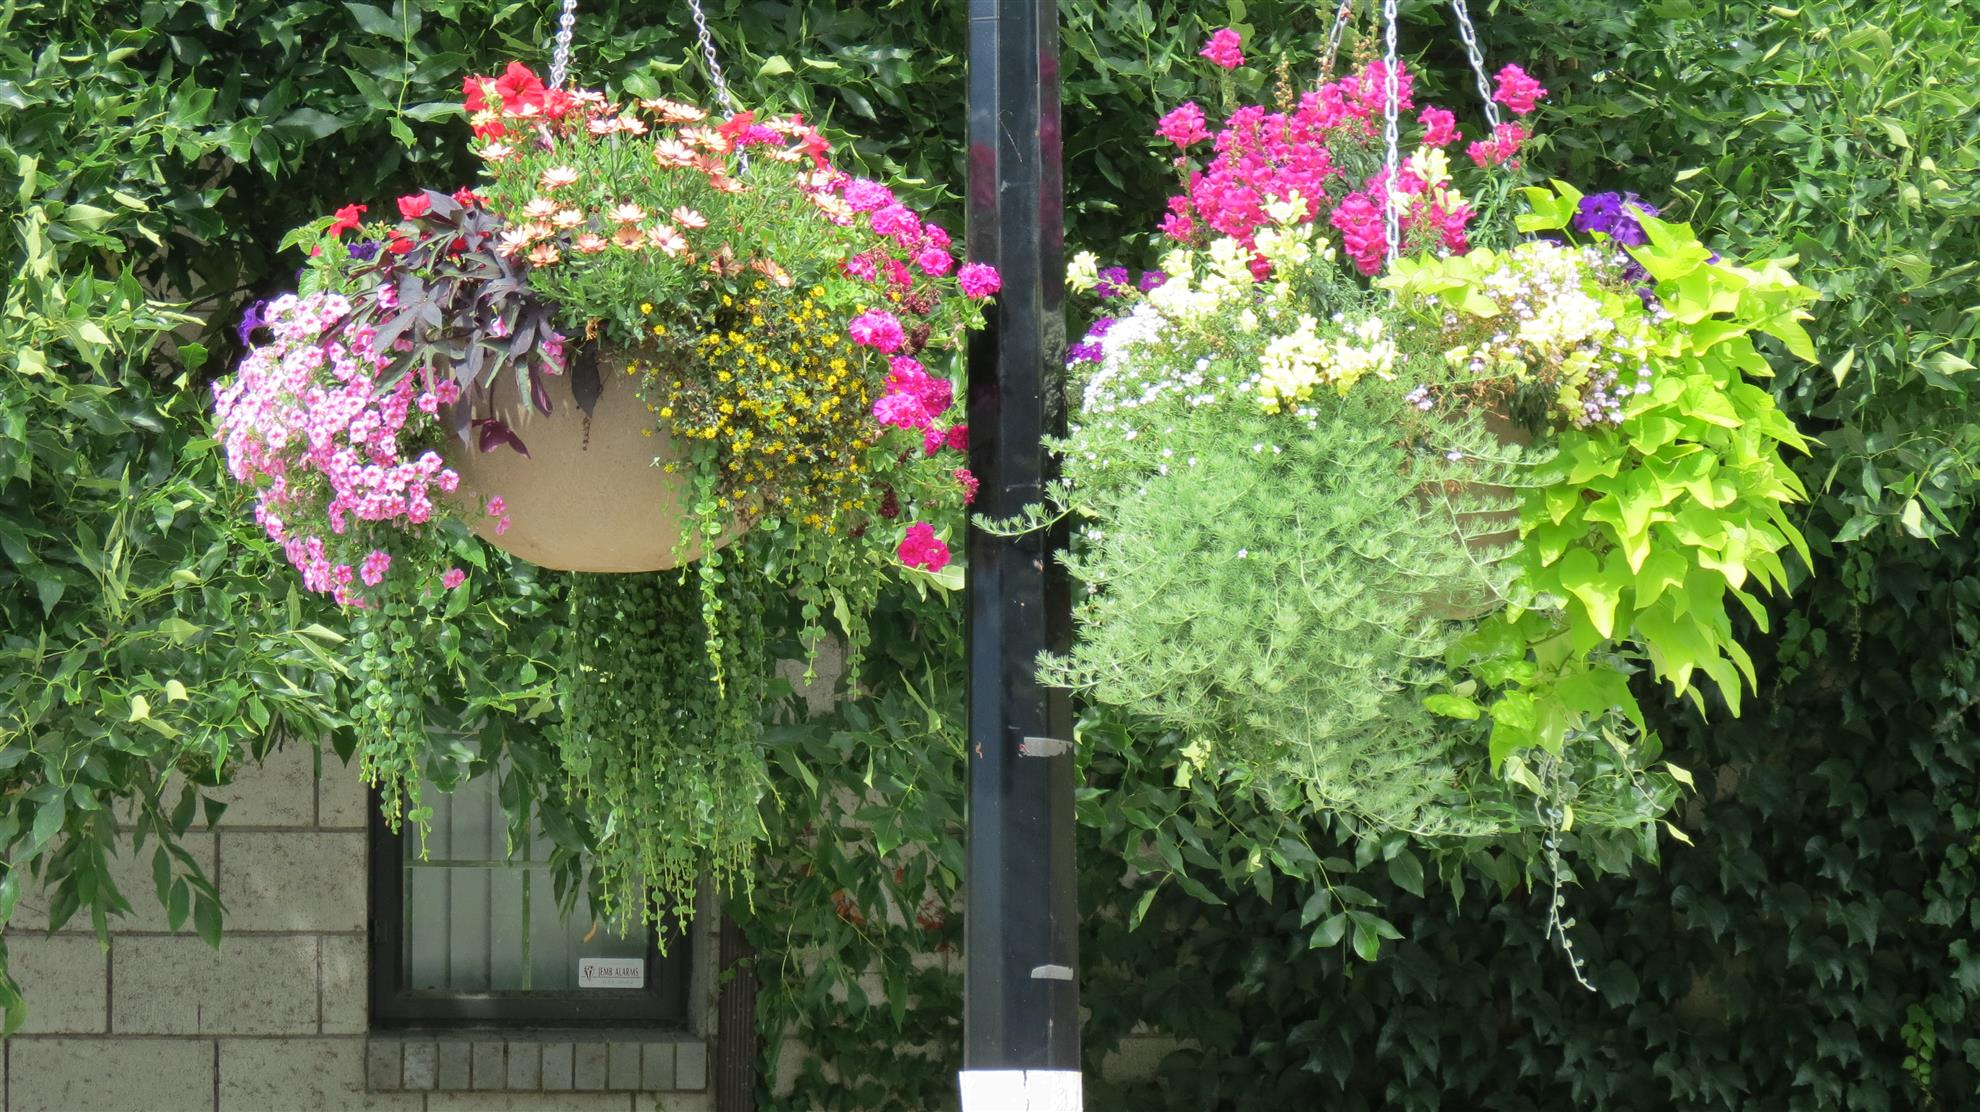 Hanging Baskets Blooming